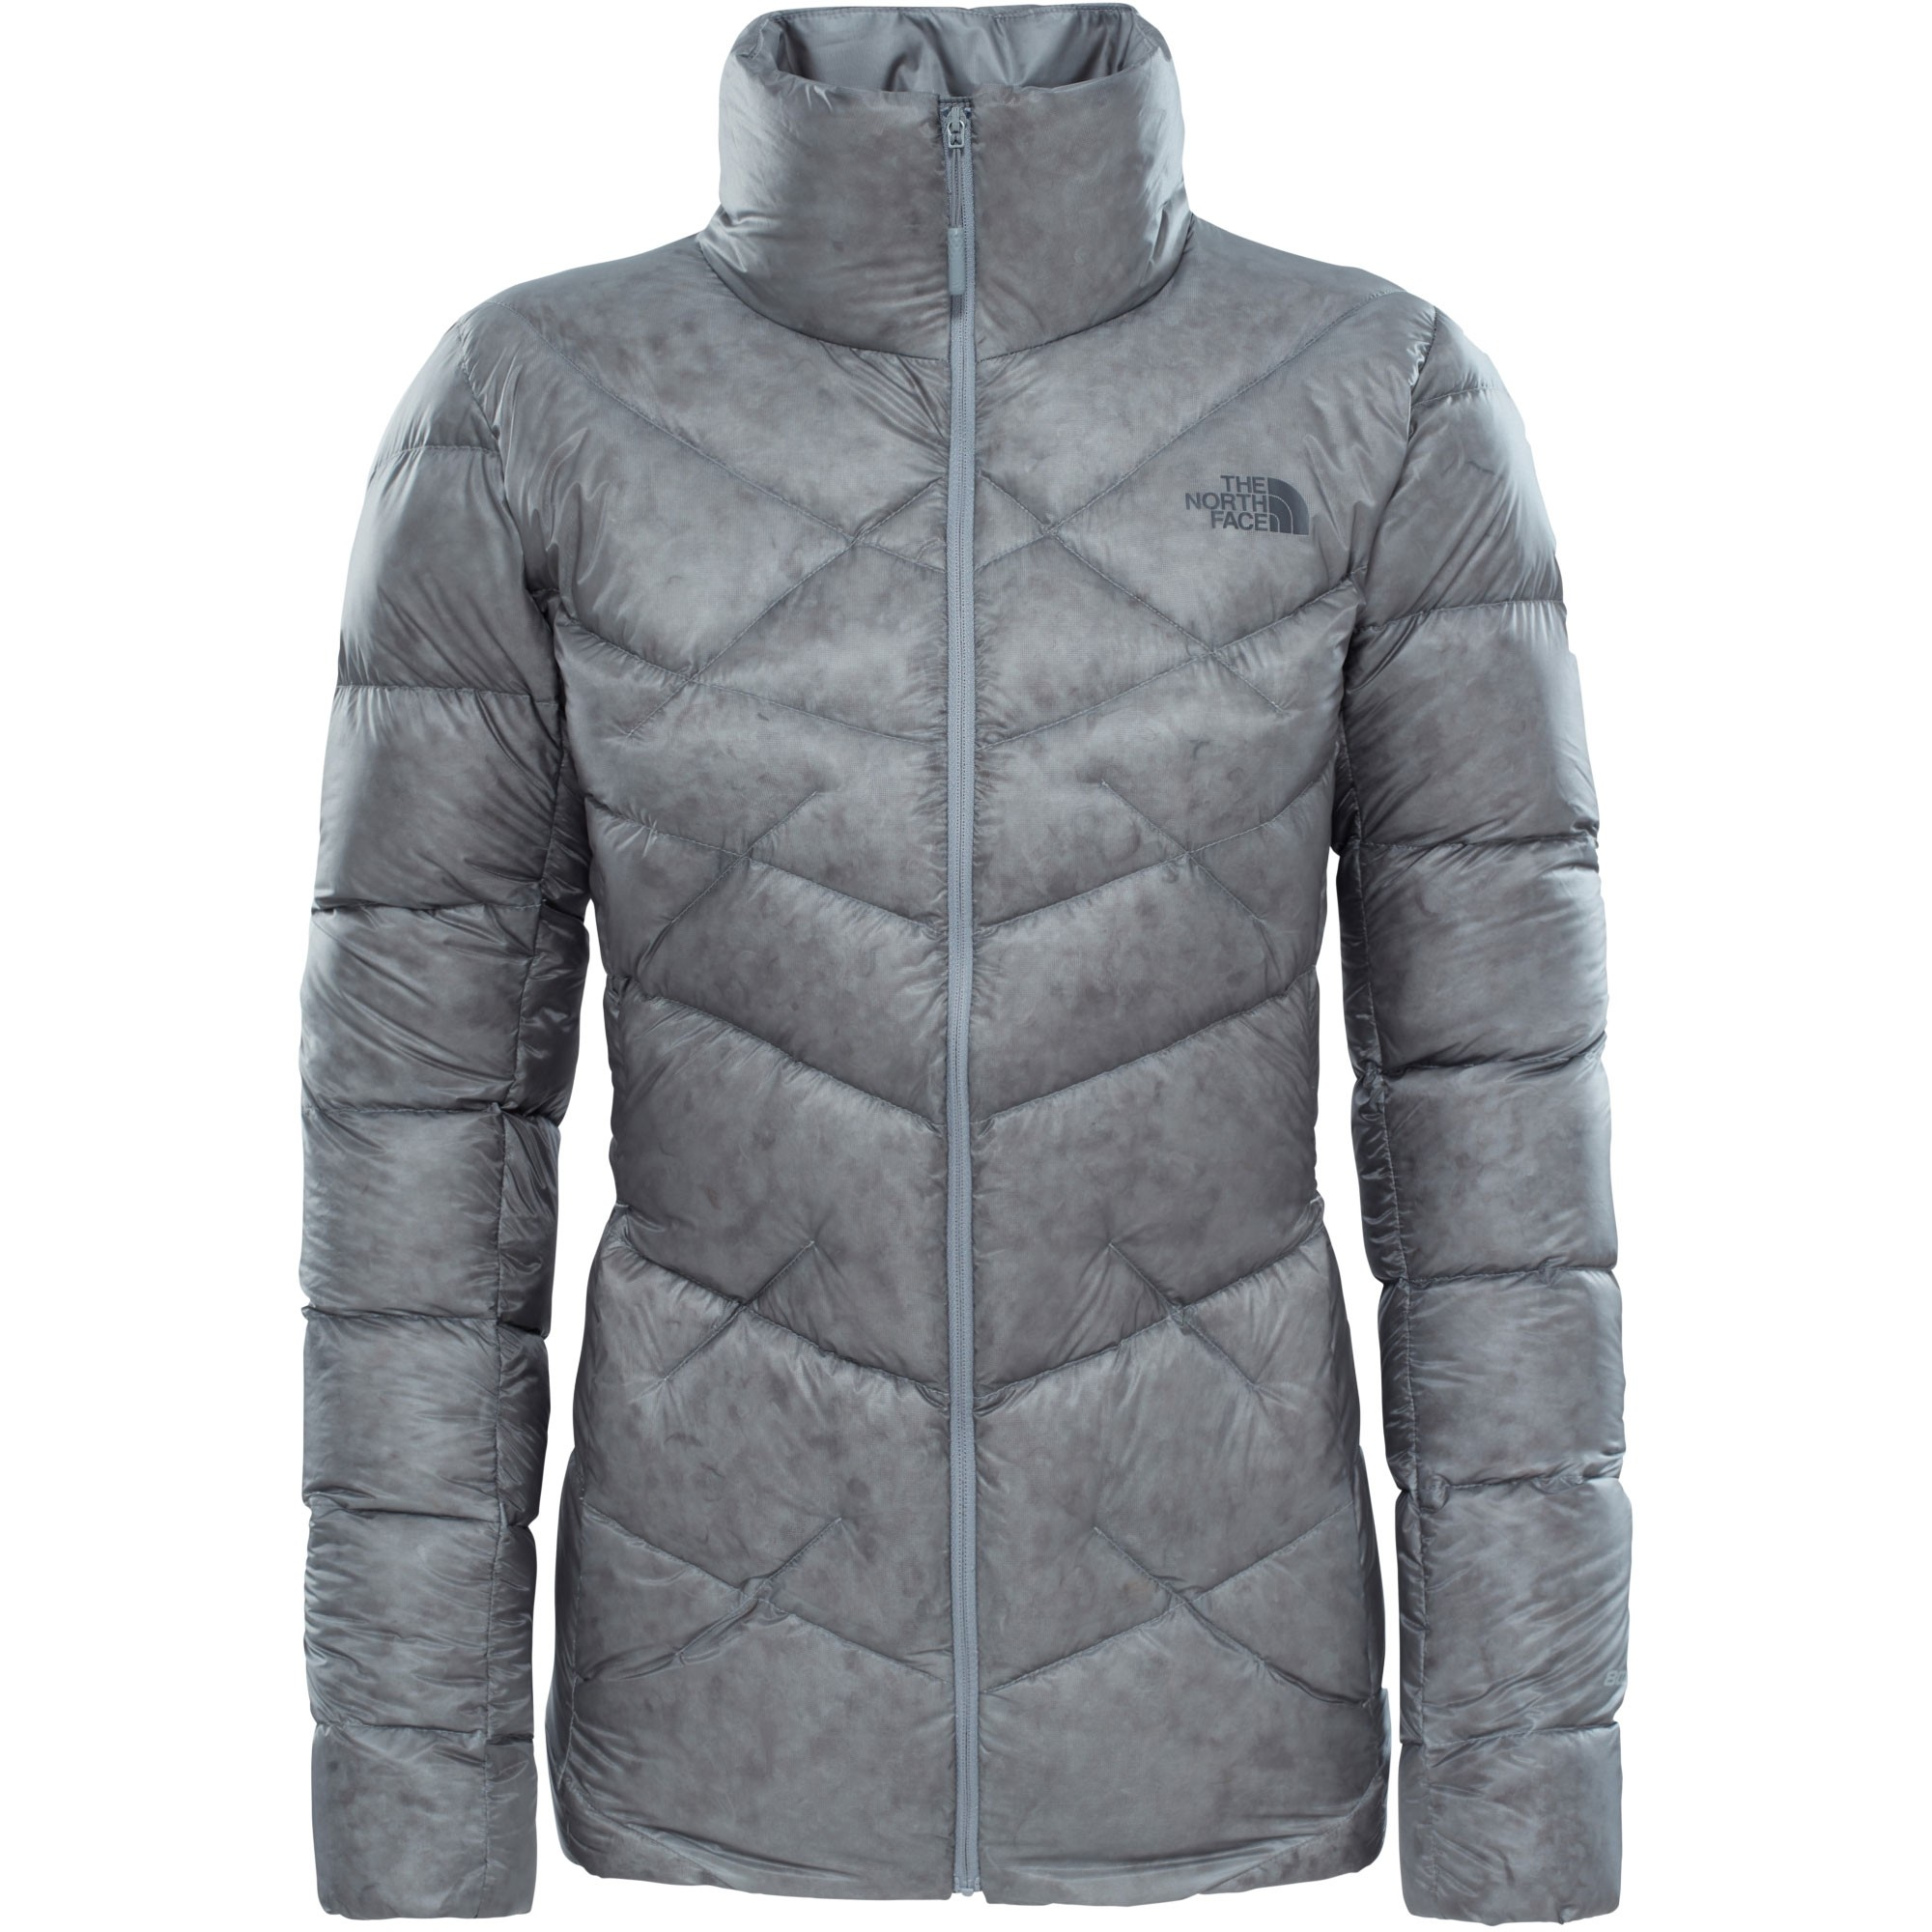 The-North-Face-Womens-Supercinco-Down-Jacket-Monument-Grey-0-W17